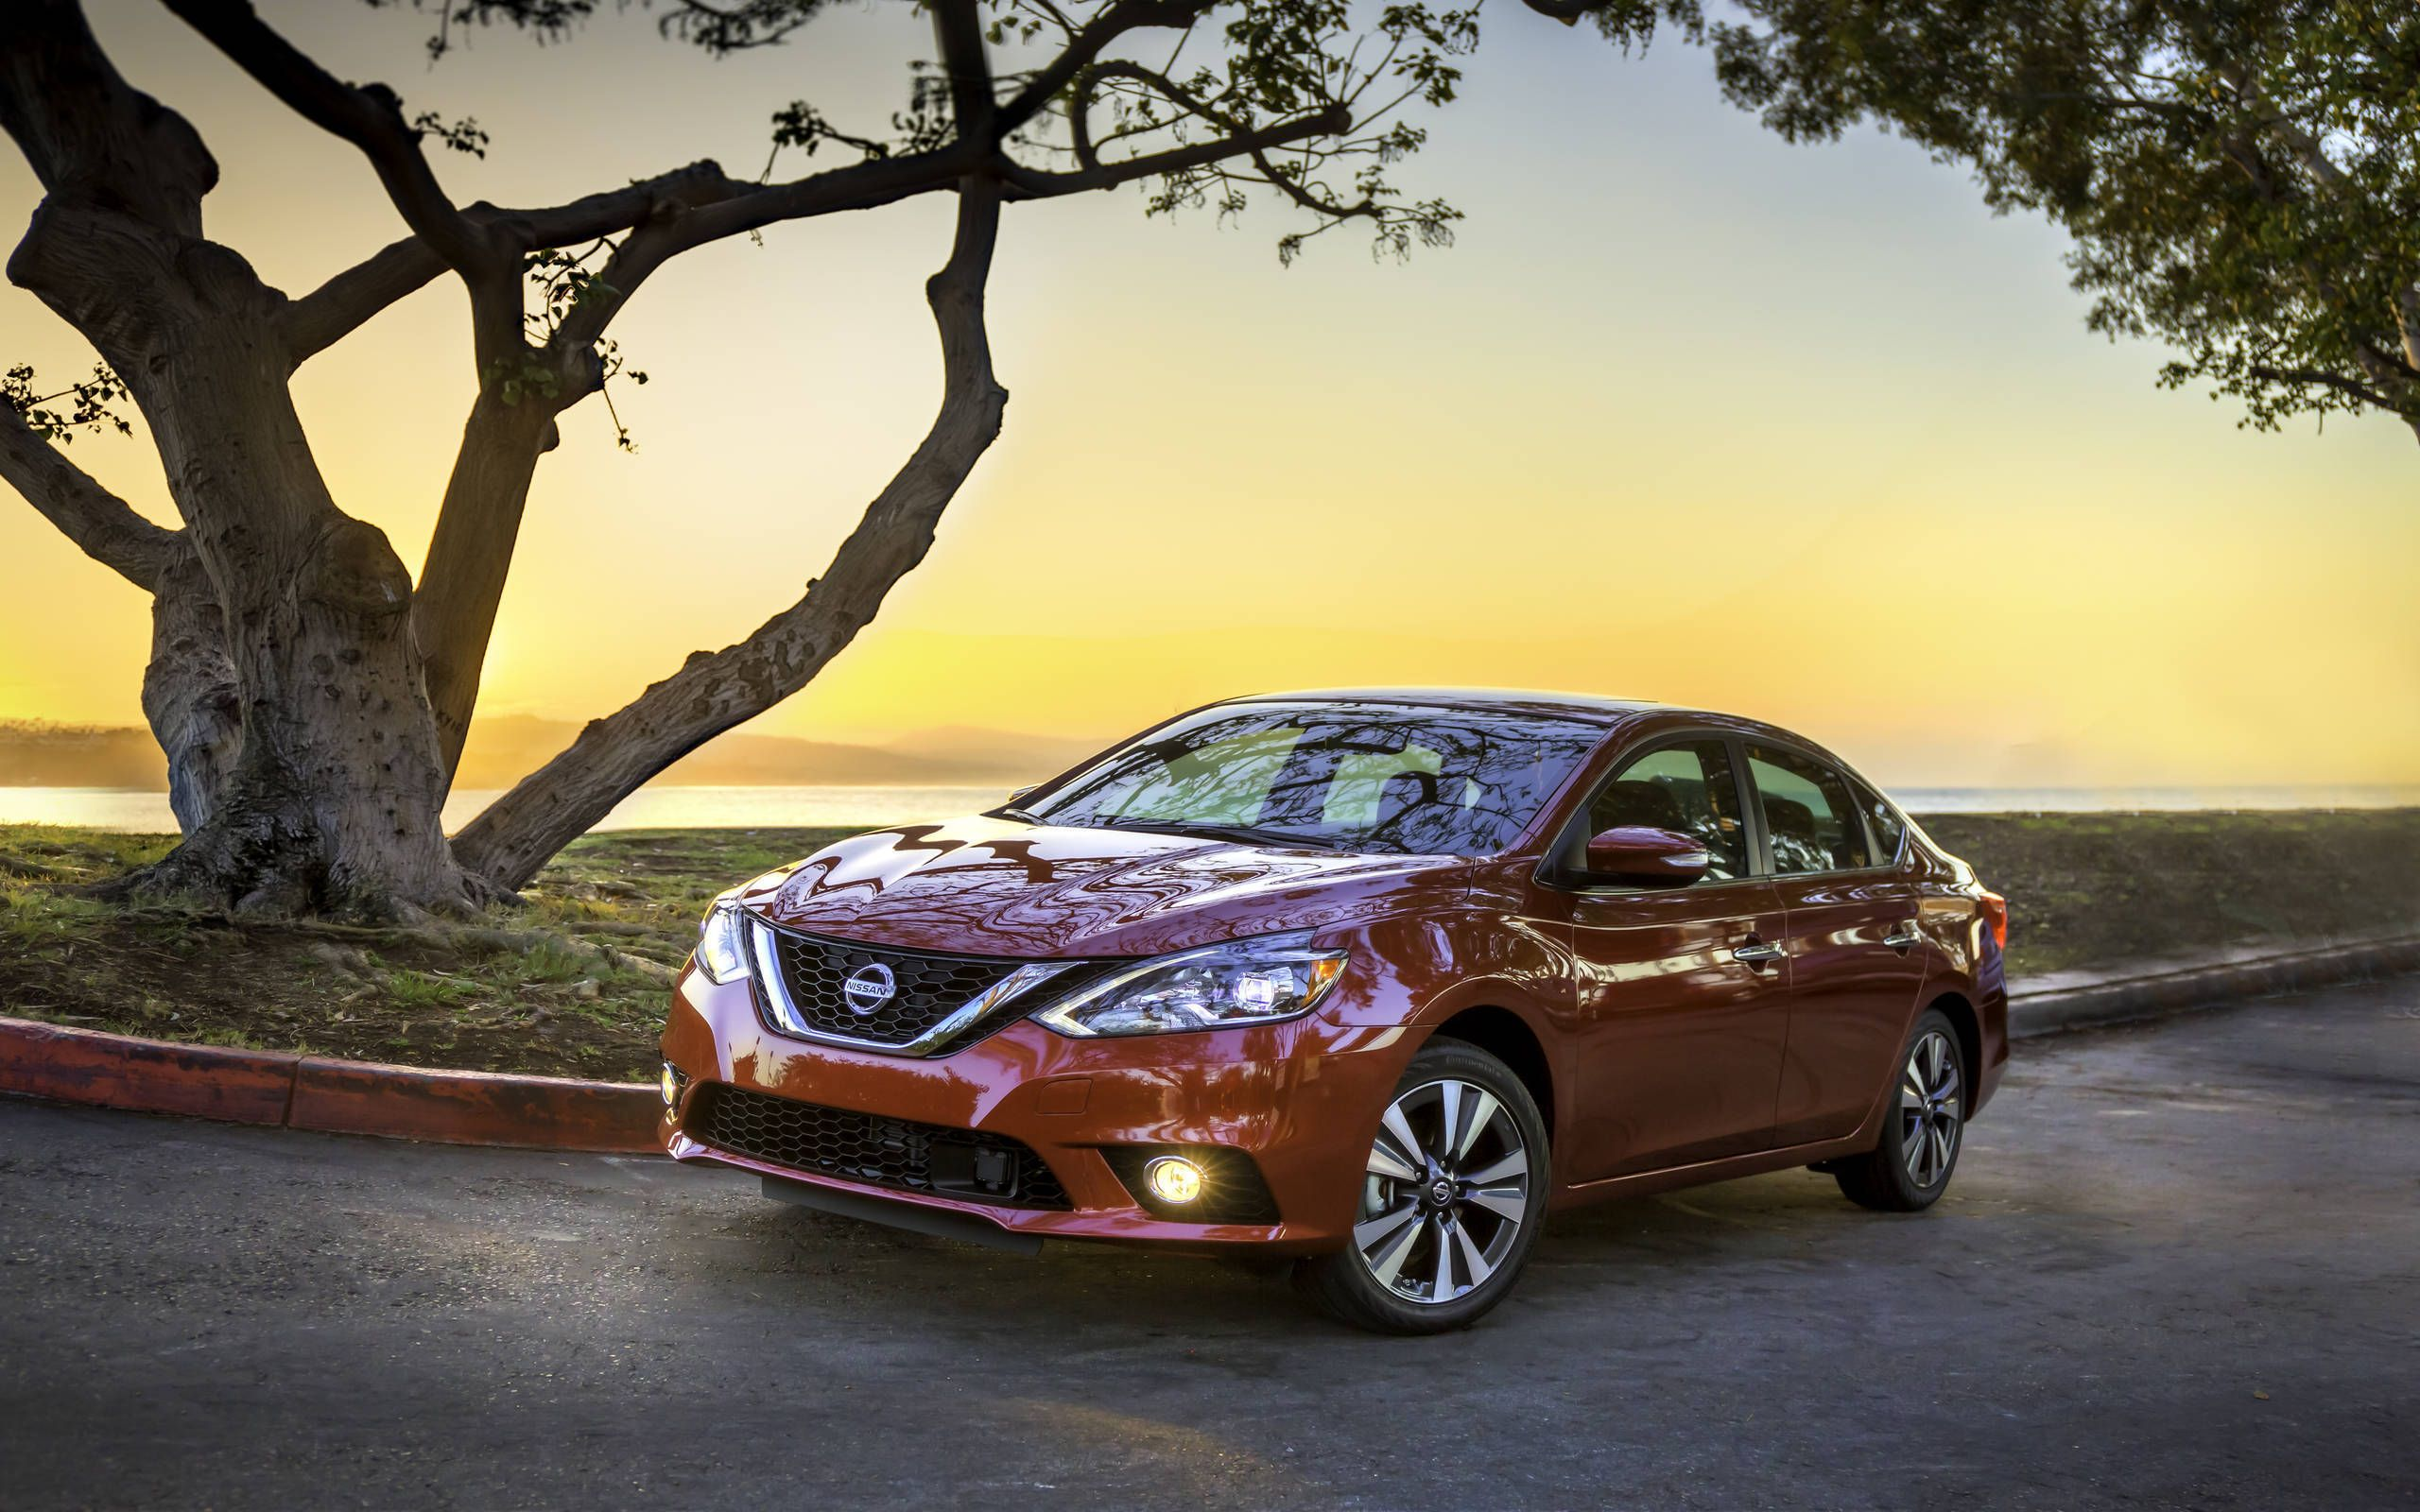 2016 Nissan Sentra Scales Up Style For The La Auto Show Compare sentra to other nissan models and find the nissan suited to your needs. 2016 nissan sentra scales up style for